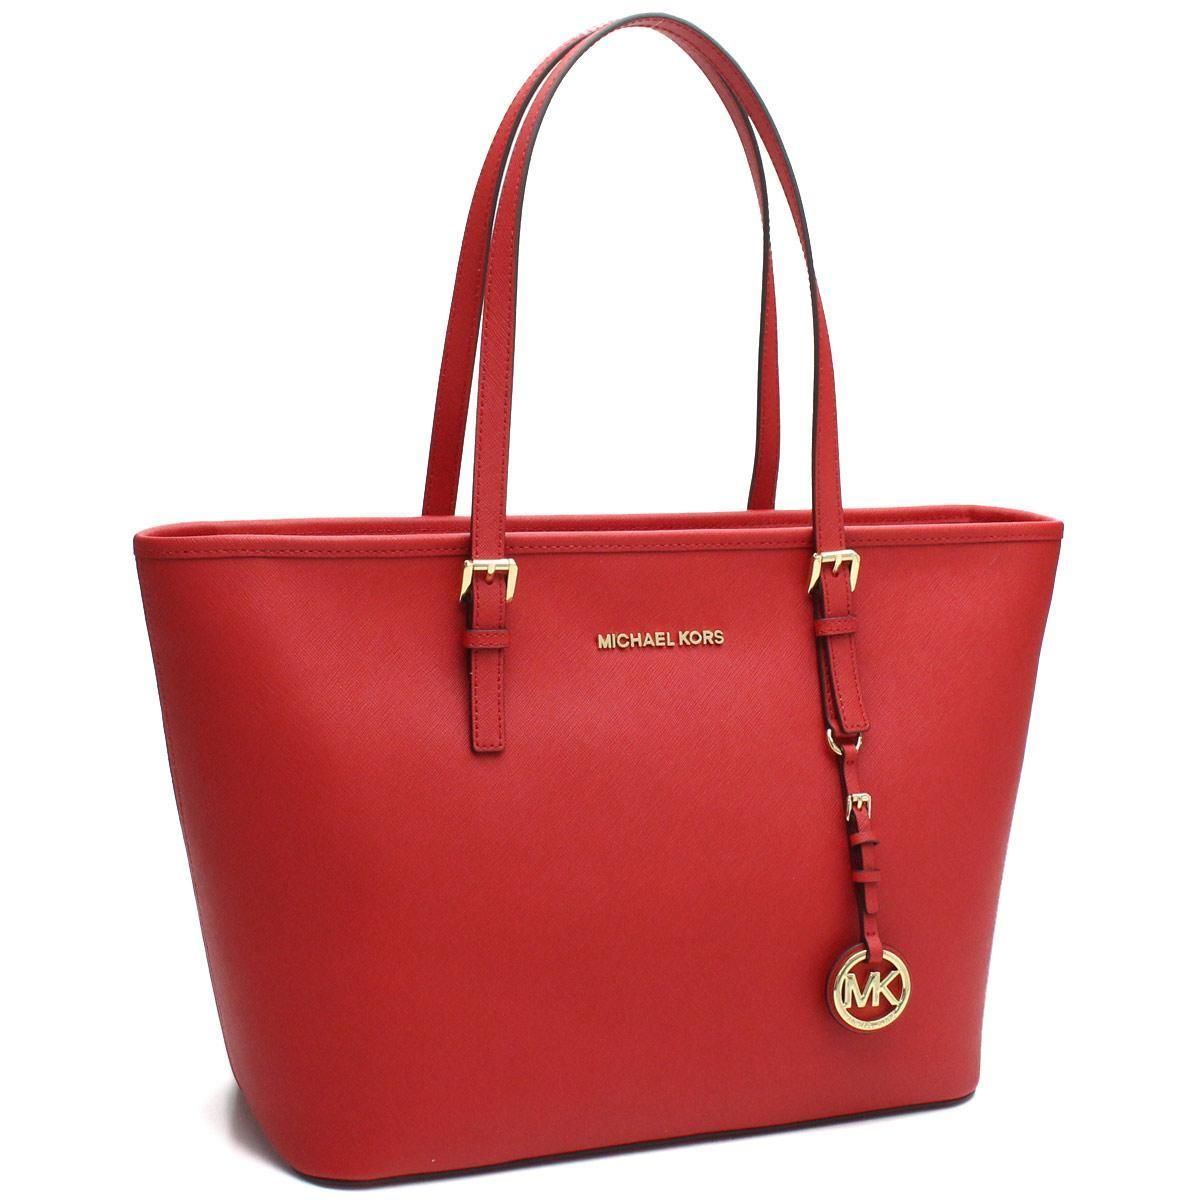 マイケル・コース (MICHAEL KORS) JET SET TRAVEL トートバッグ 30S4GTVT2L BRIGHT RED